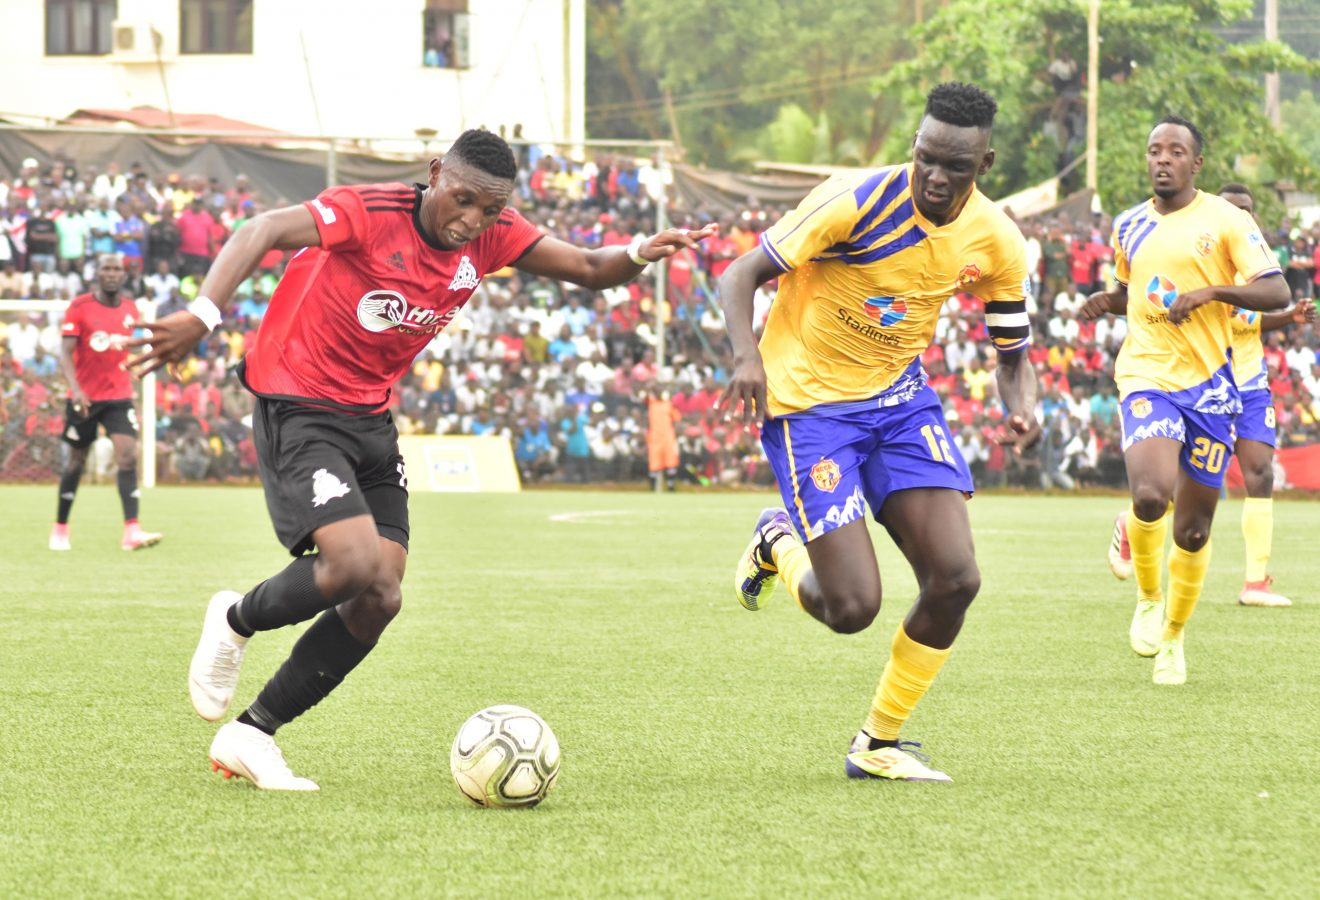 UPL: Vipers, KCCA clash in potential title decider - Nile Post